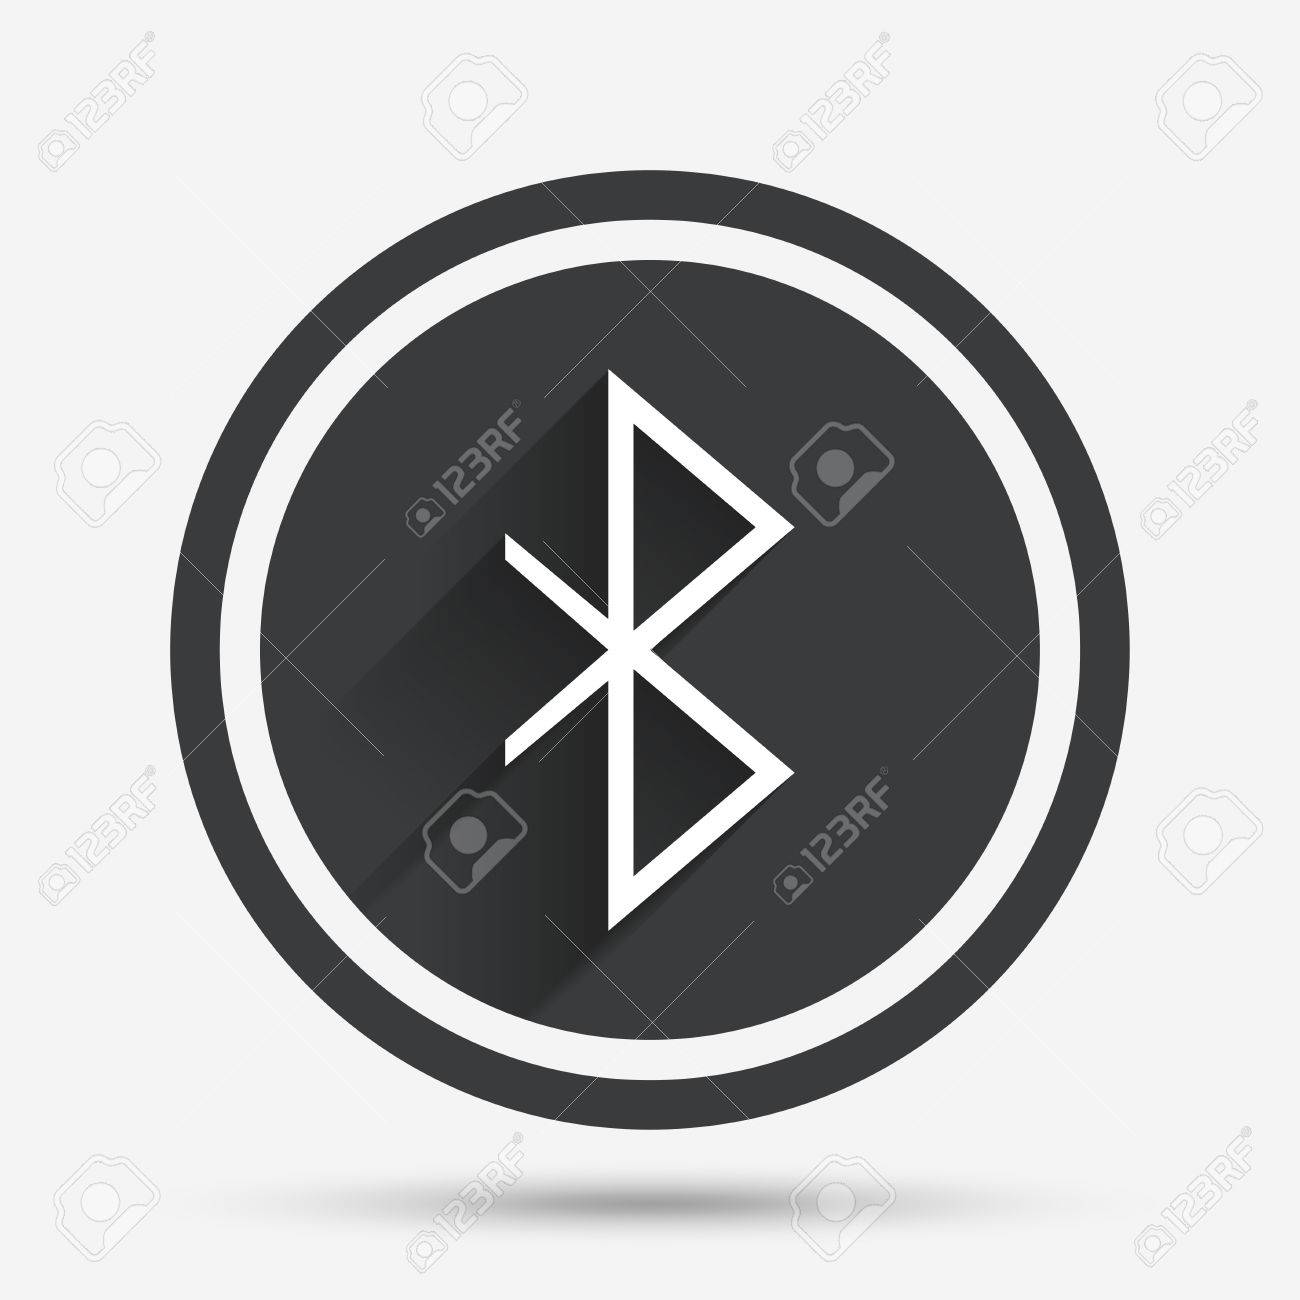 Bluetooth sign icon mobile network symbol data transfer circle mobile network symbol data transfer circle flat button with shadow biocorpaavc